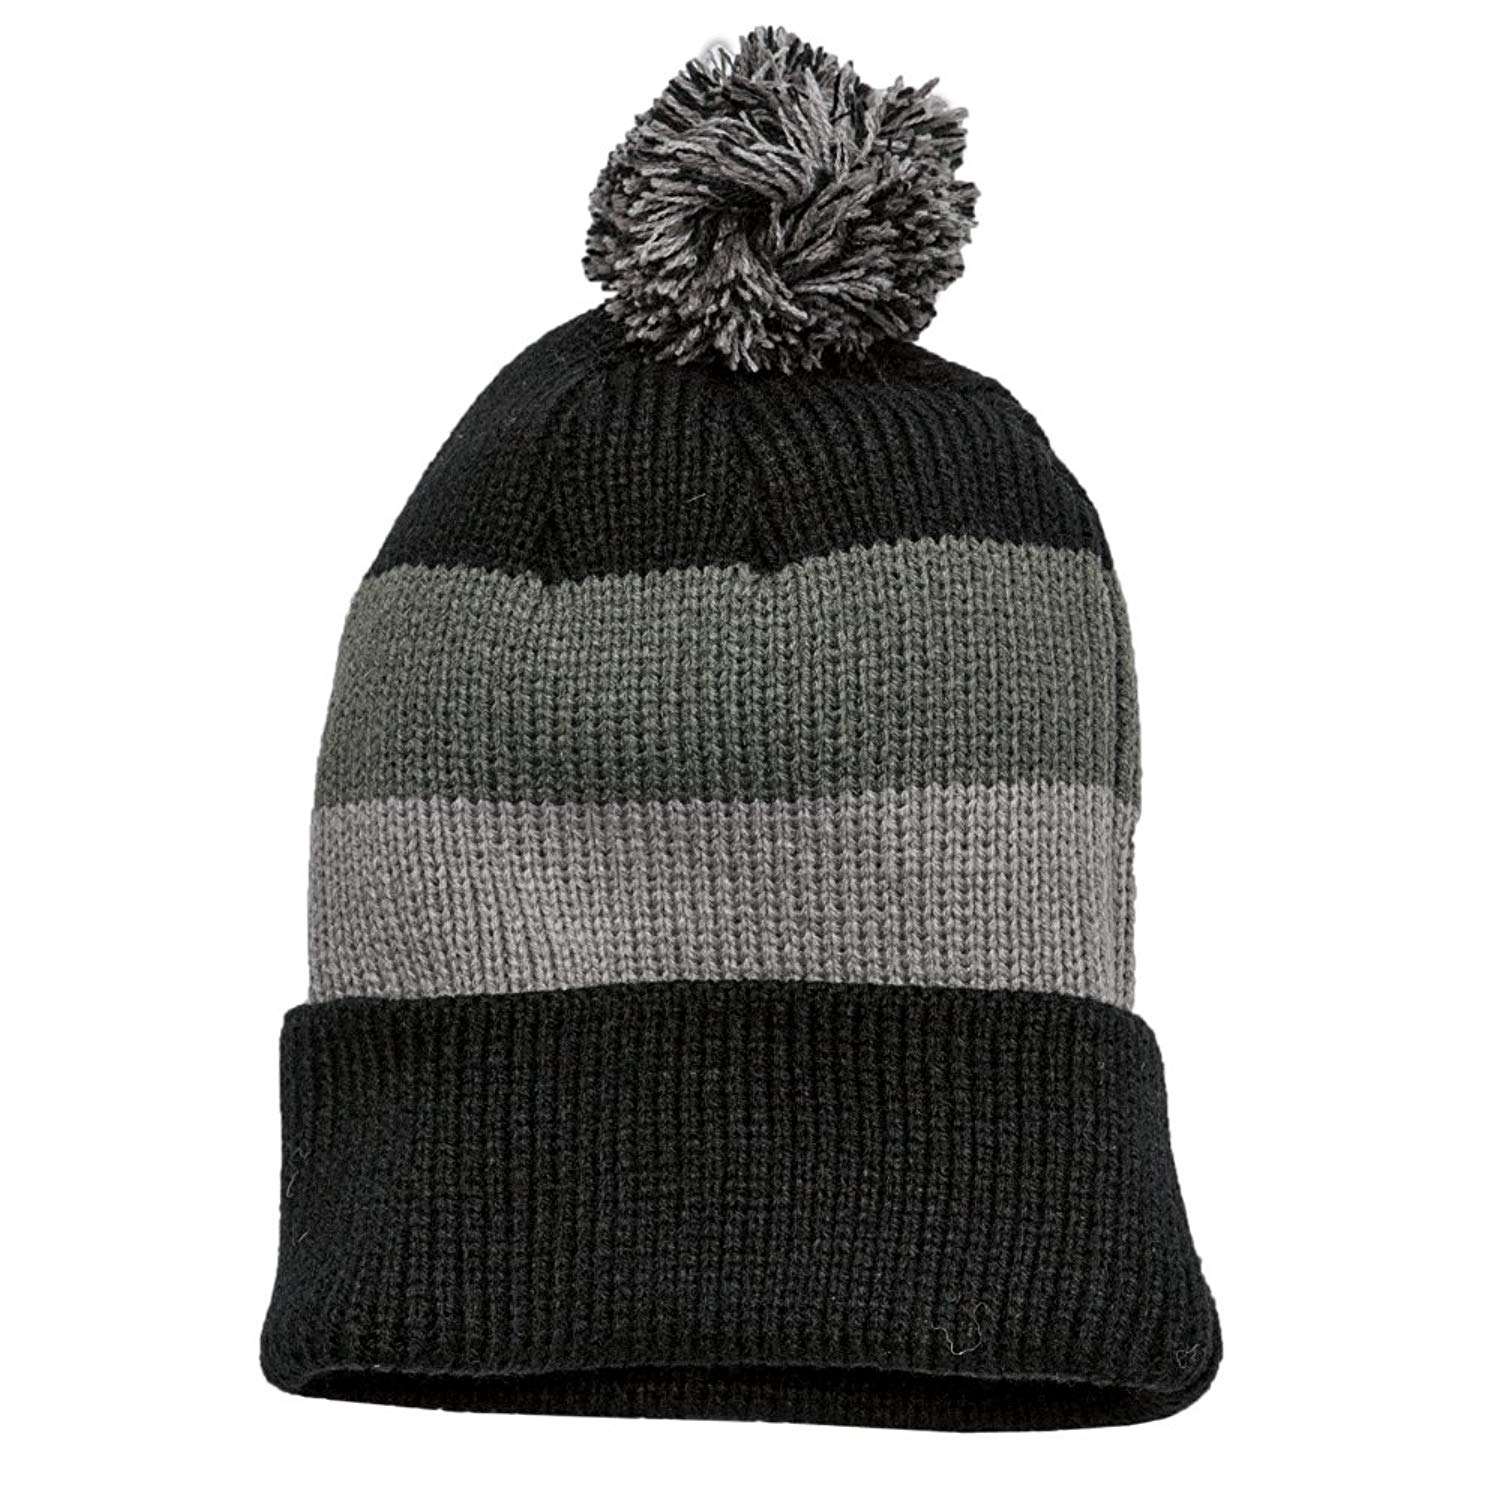 f3b1c9f426a Get Quotations · Vintage Striped Acrylic Winter Beanie Hat with Removable  Pom